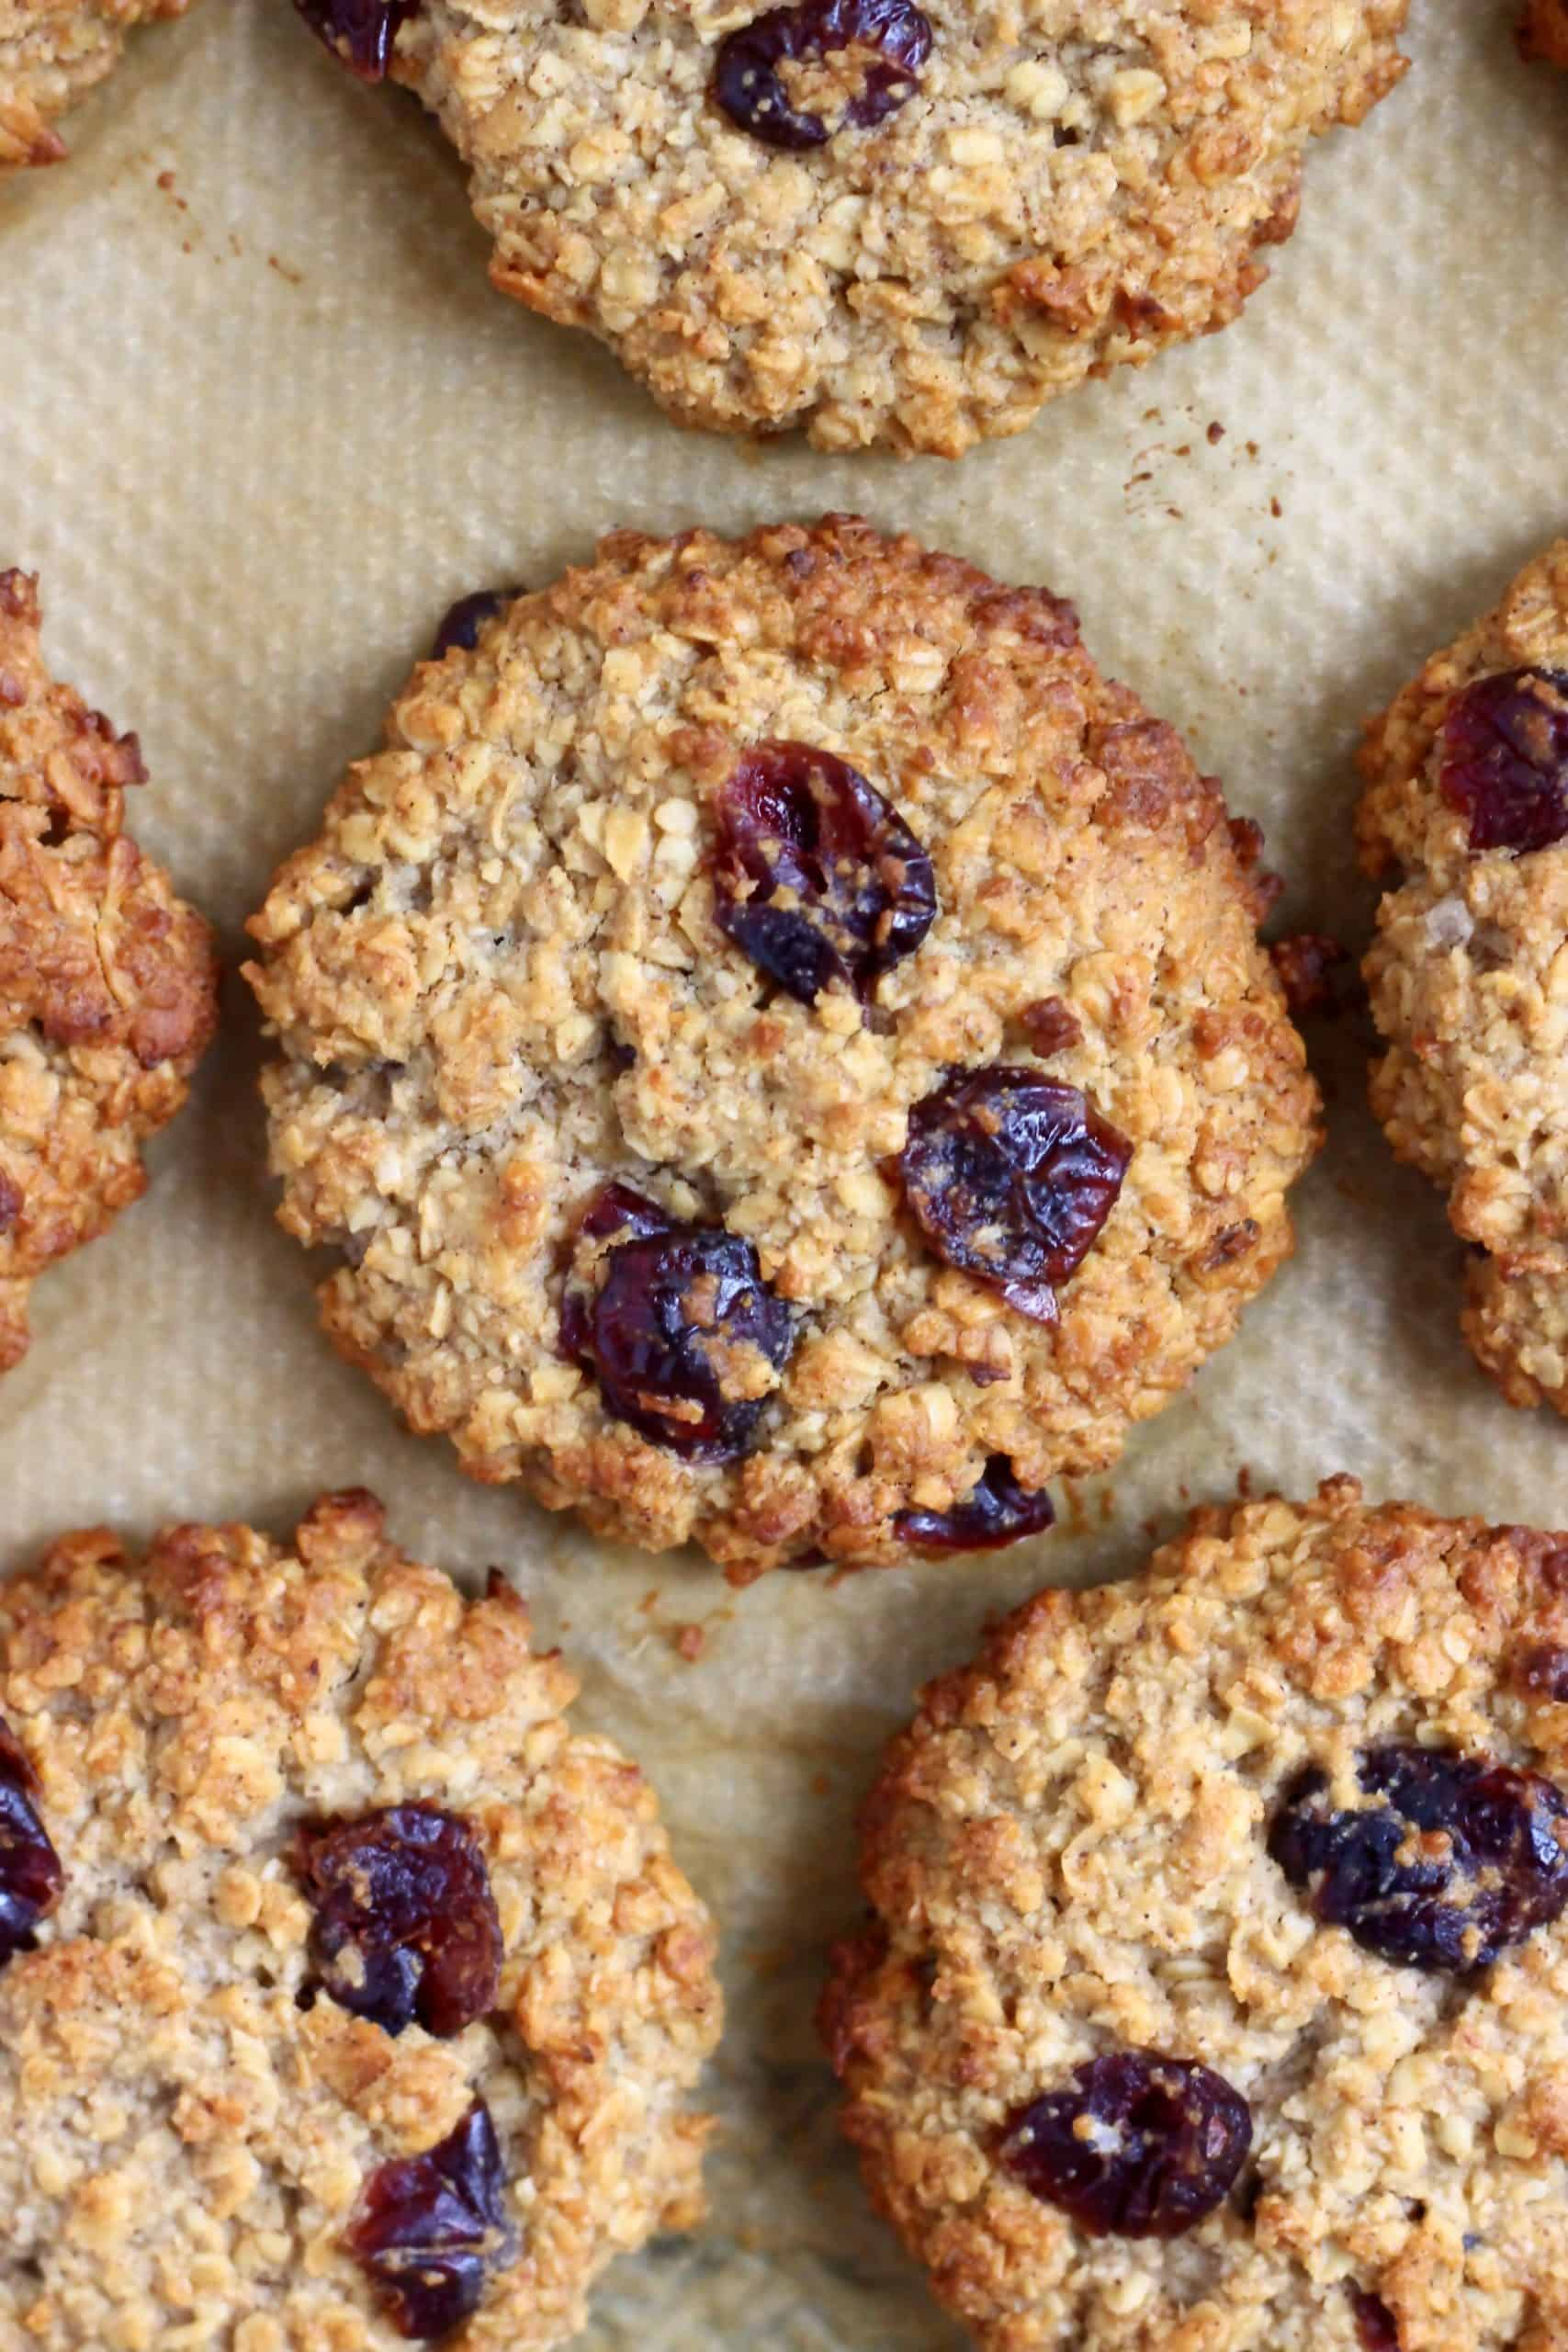 Four oatmeal cookies with dried cranberries